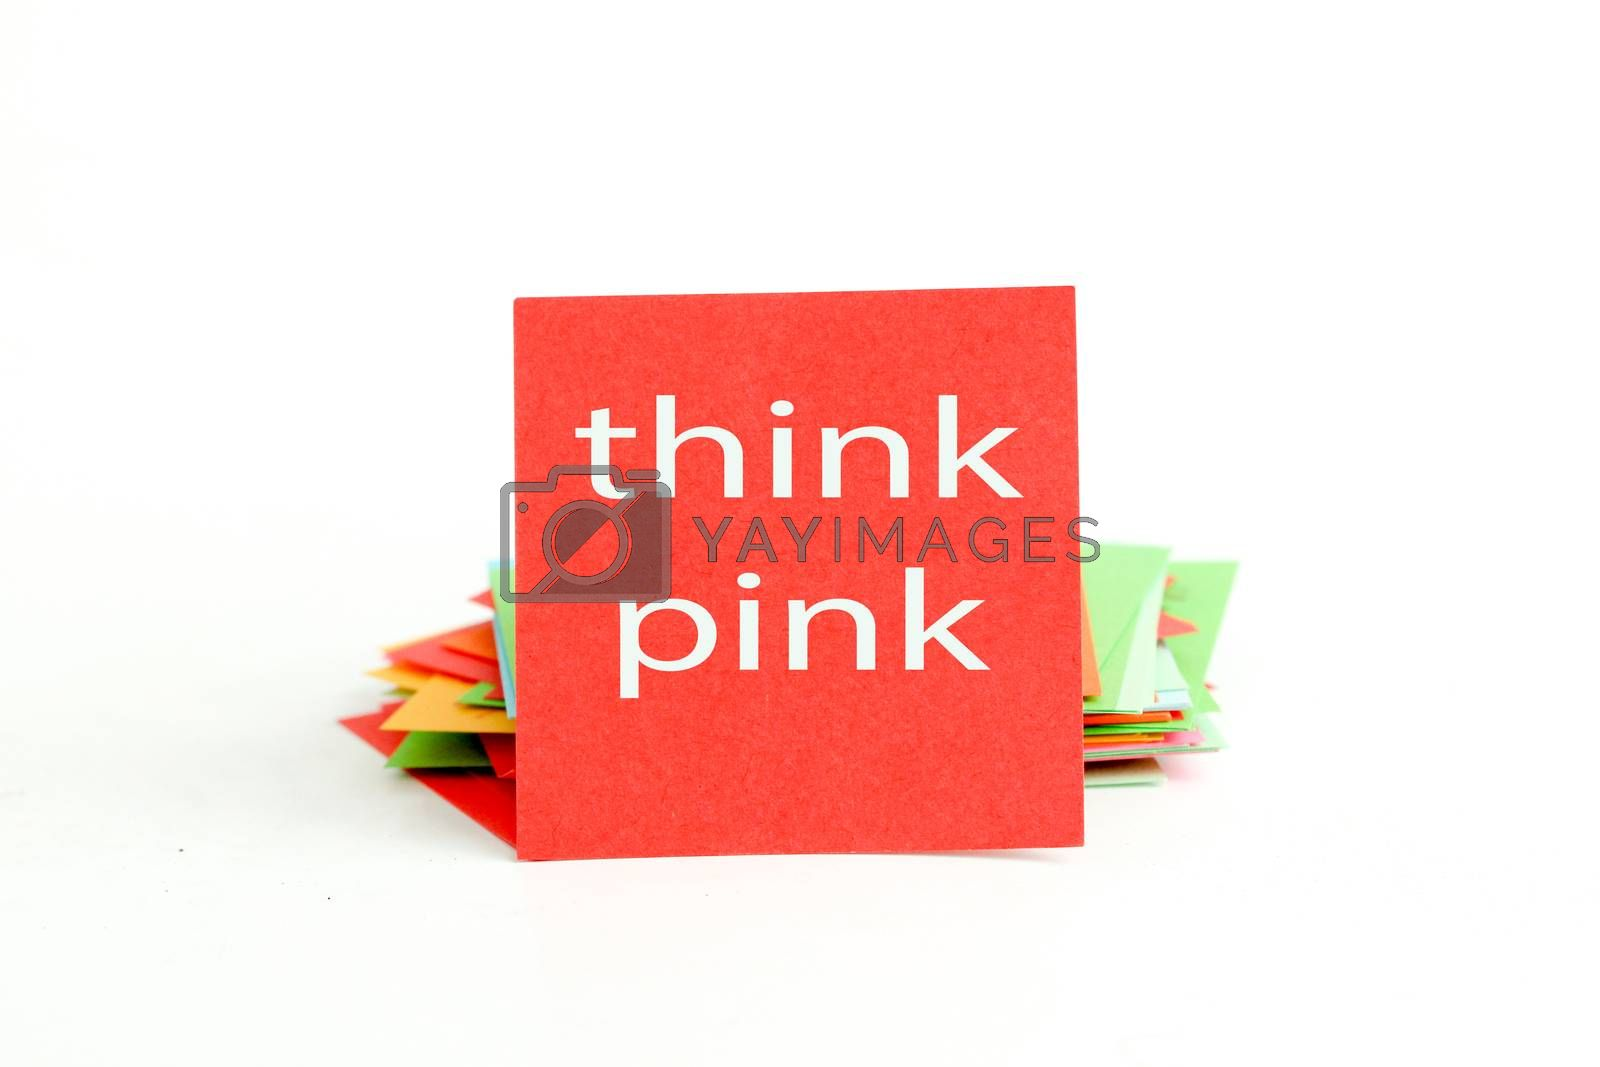 picture of a red note paper with text think pink